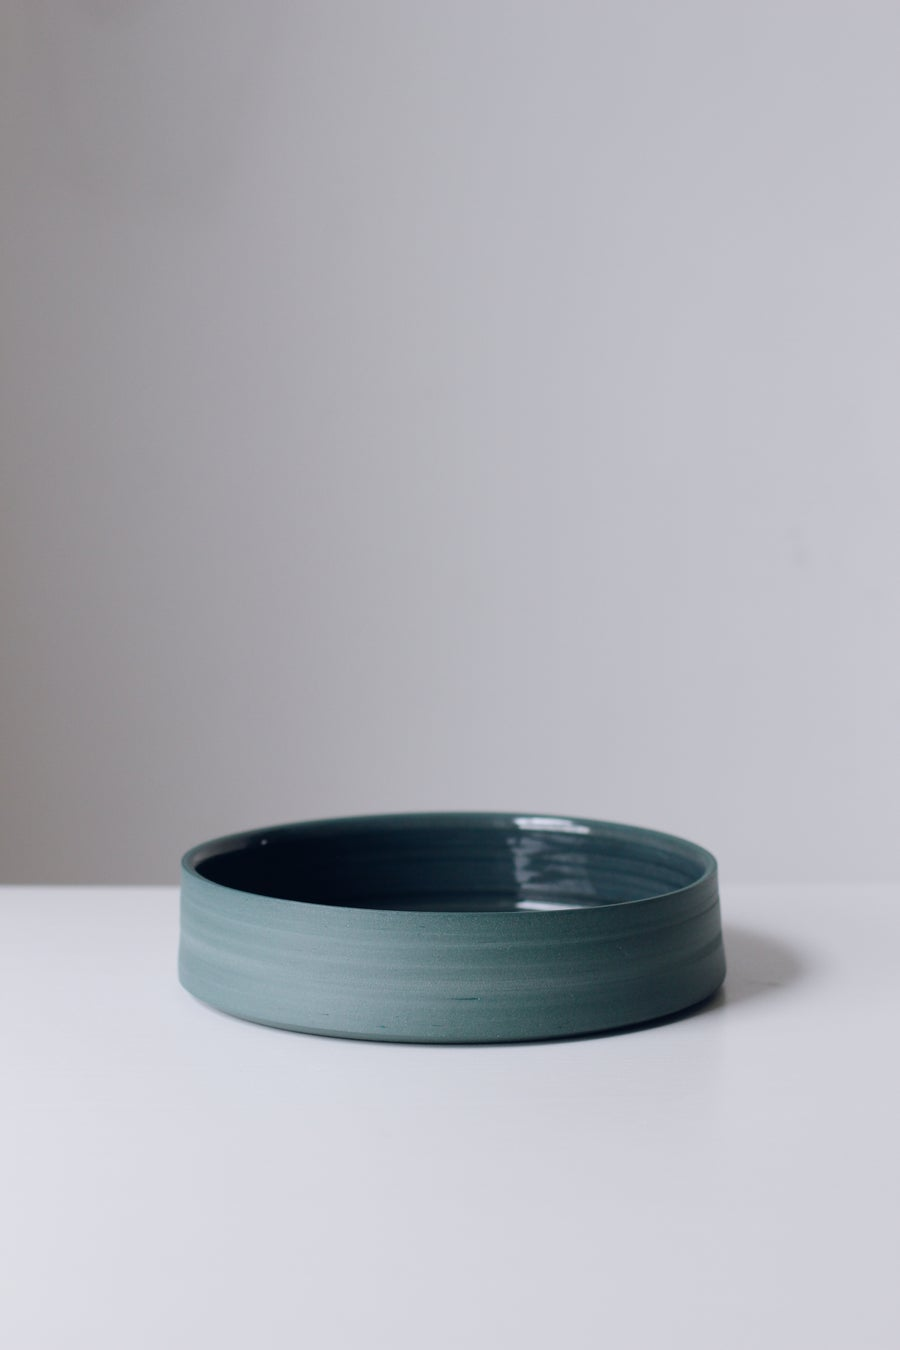 Image of Teal Serving Platter